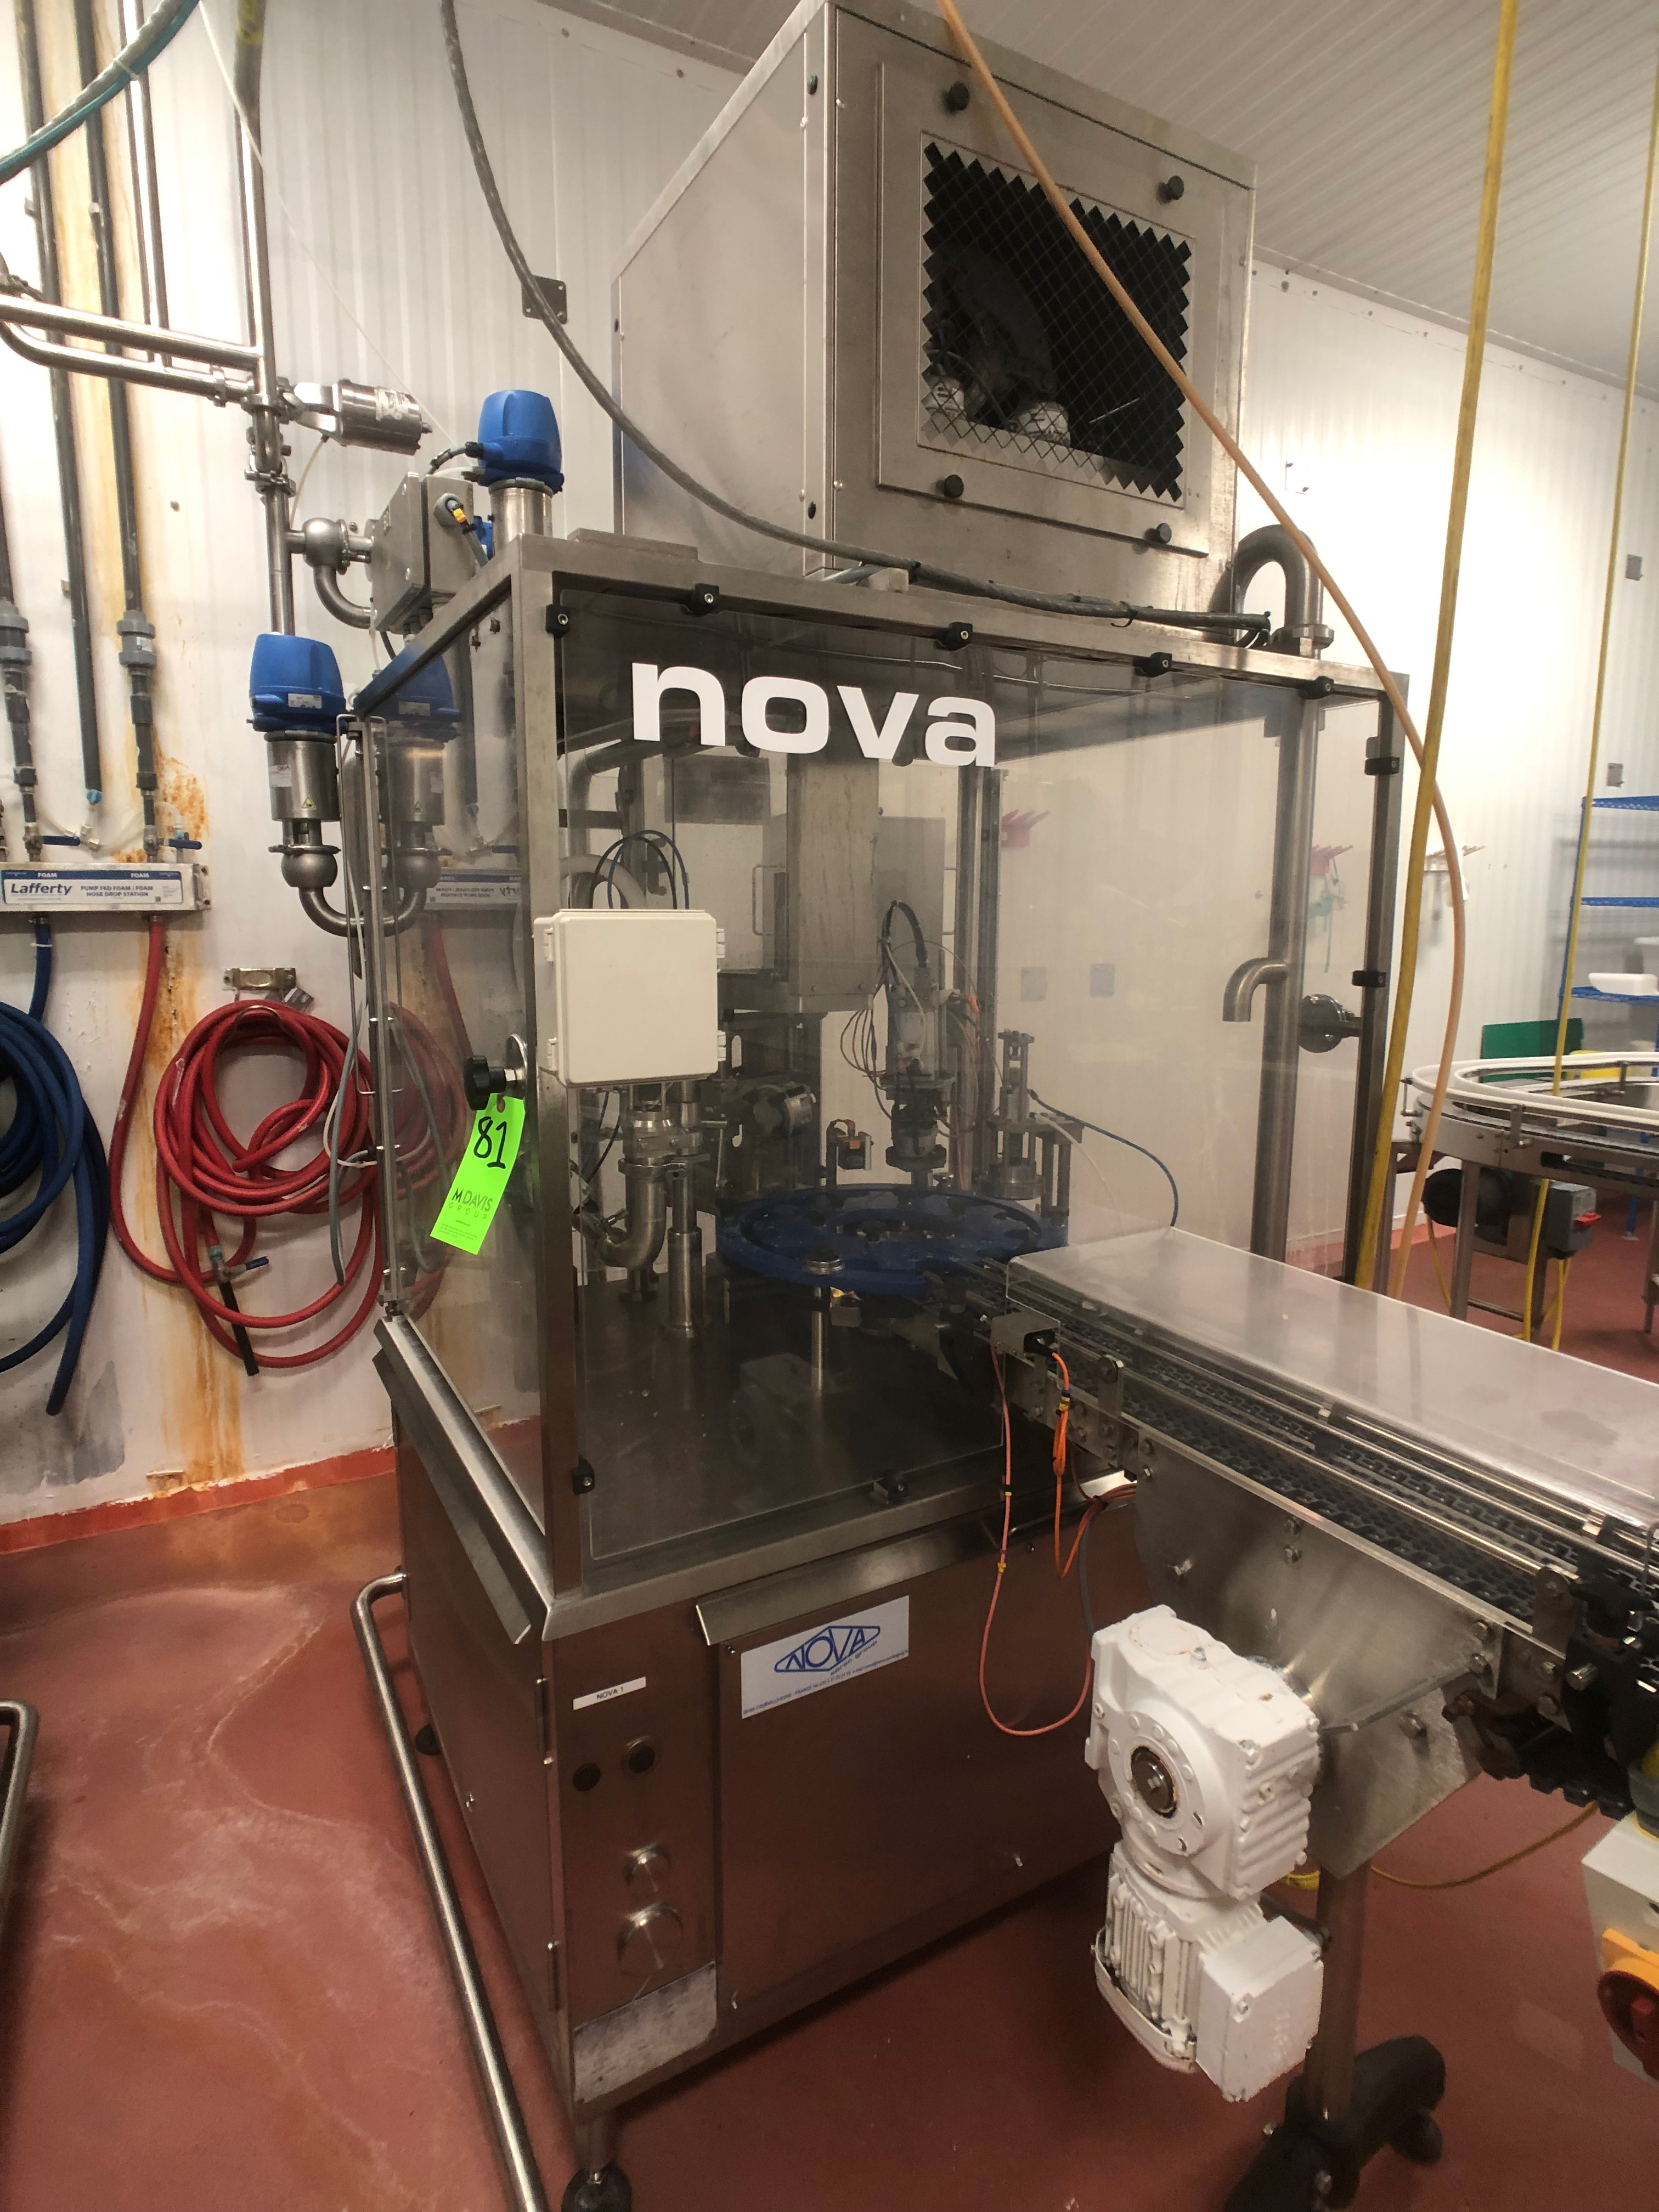 Drinkable Yogurt & Glass Bottle Filling Plant in Indianapolis